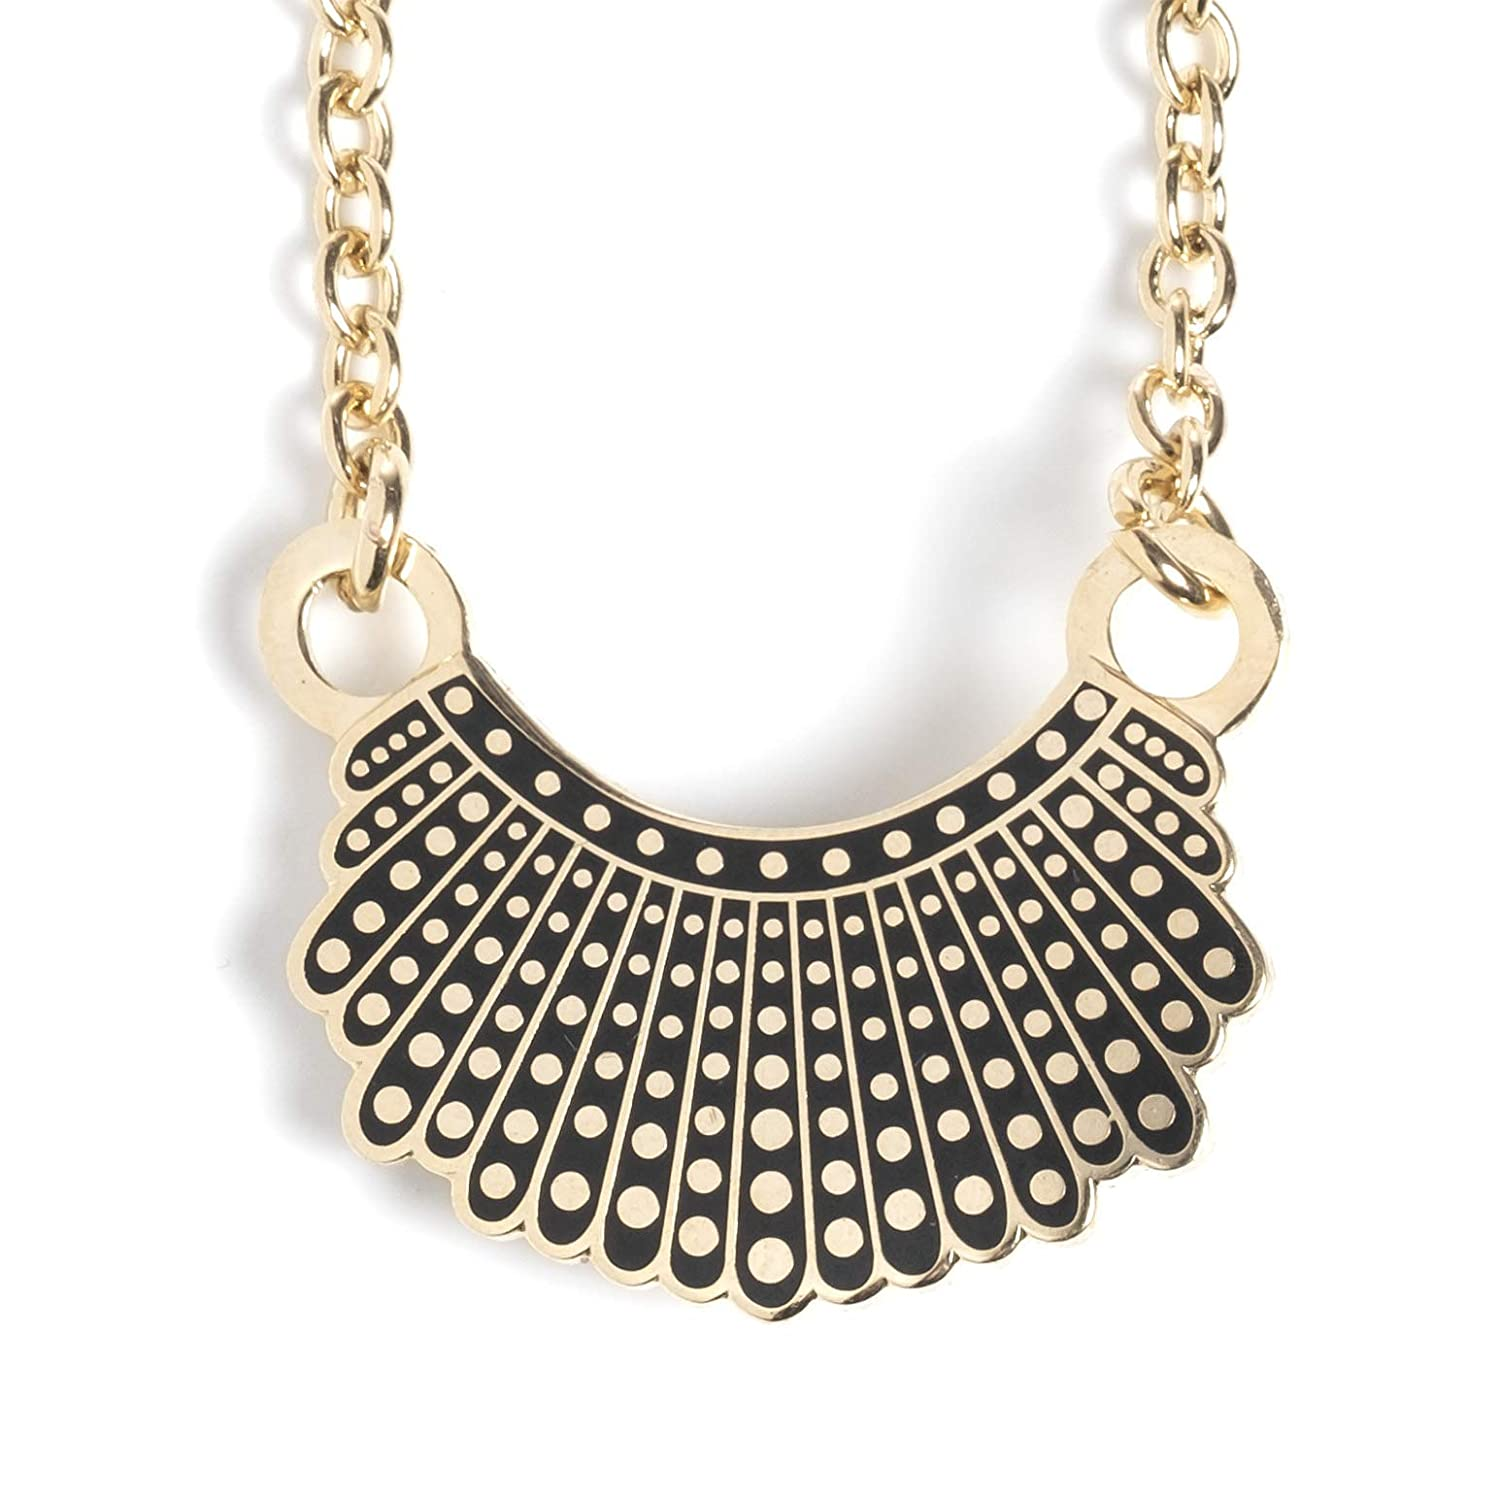 2de448024 Amazon.com: Dissent Collar Necklace - 24k Gold Plated: Clothing